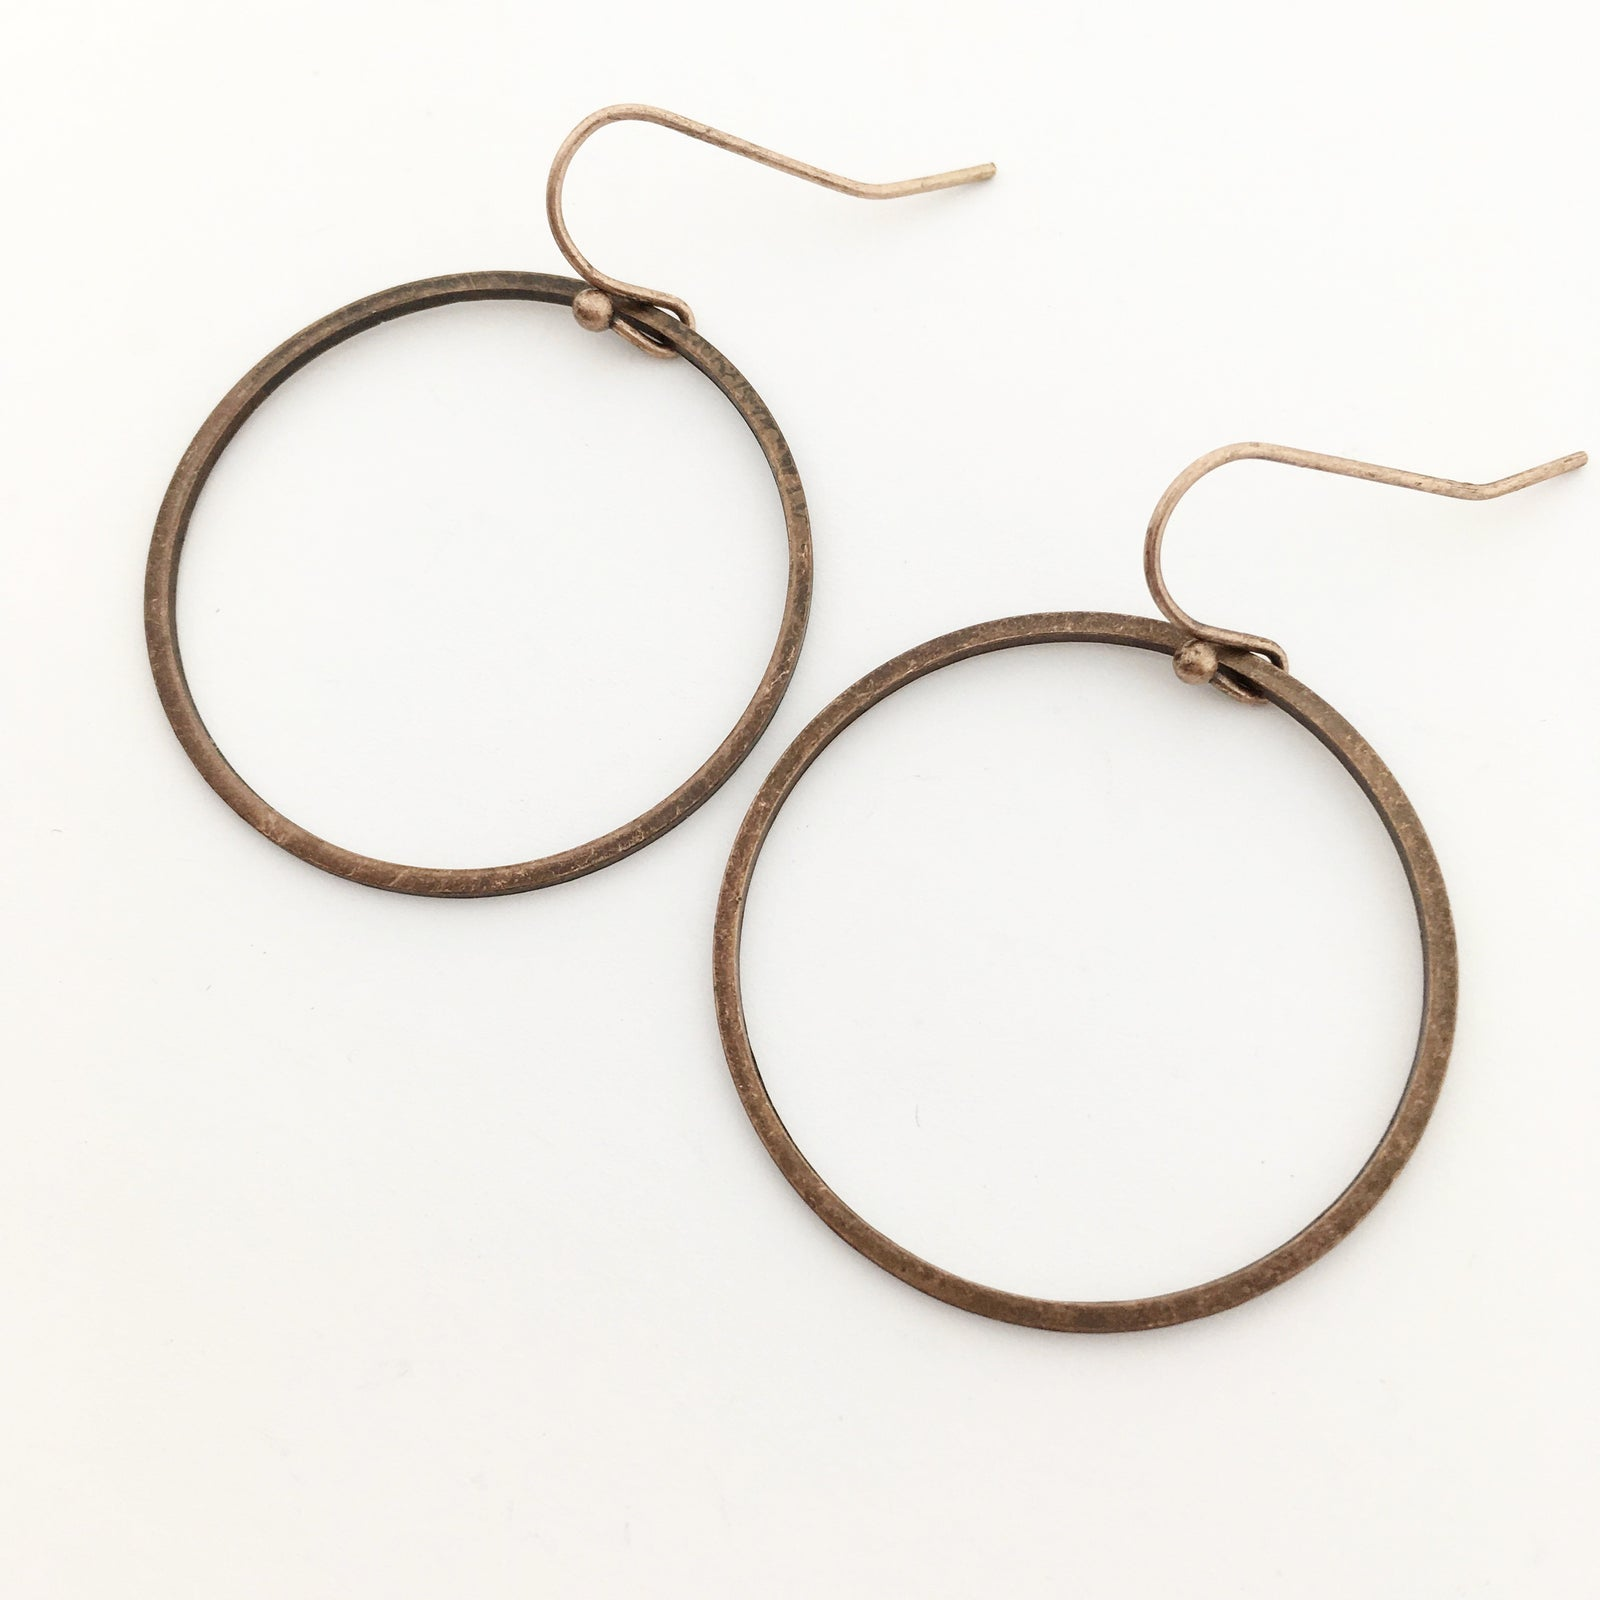 COPPER ENDLESS HOOPS